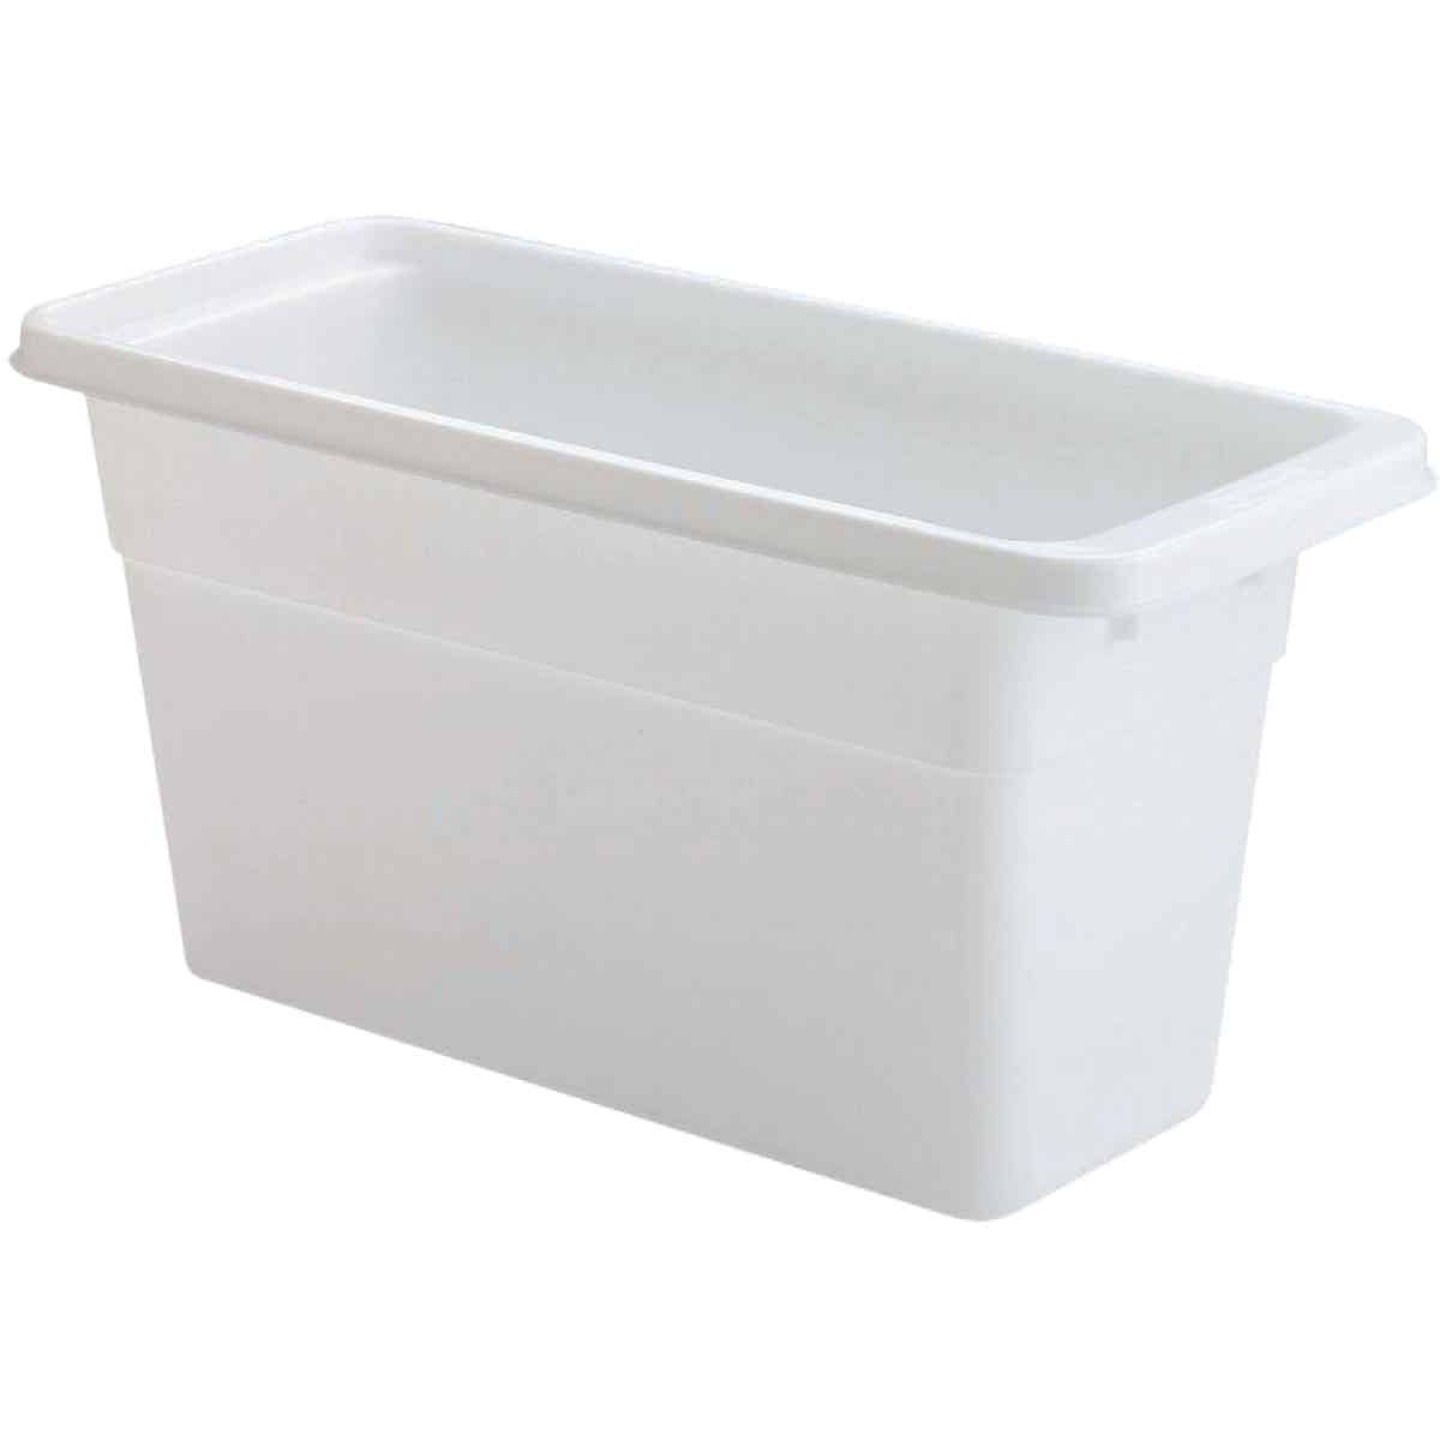 Rubbermaid Servin' Saver Ice Cube Storage Bin Image 1